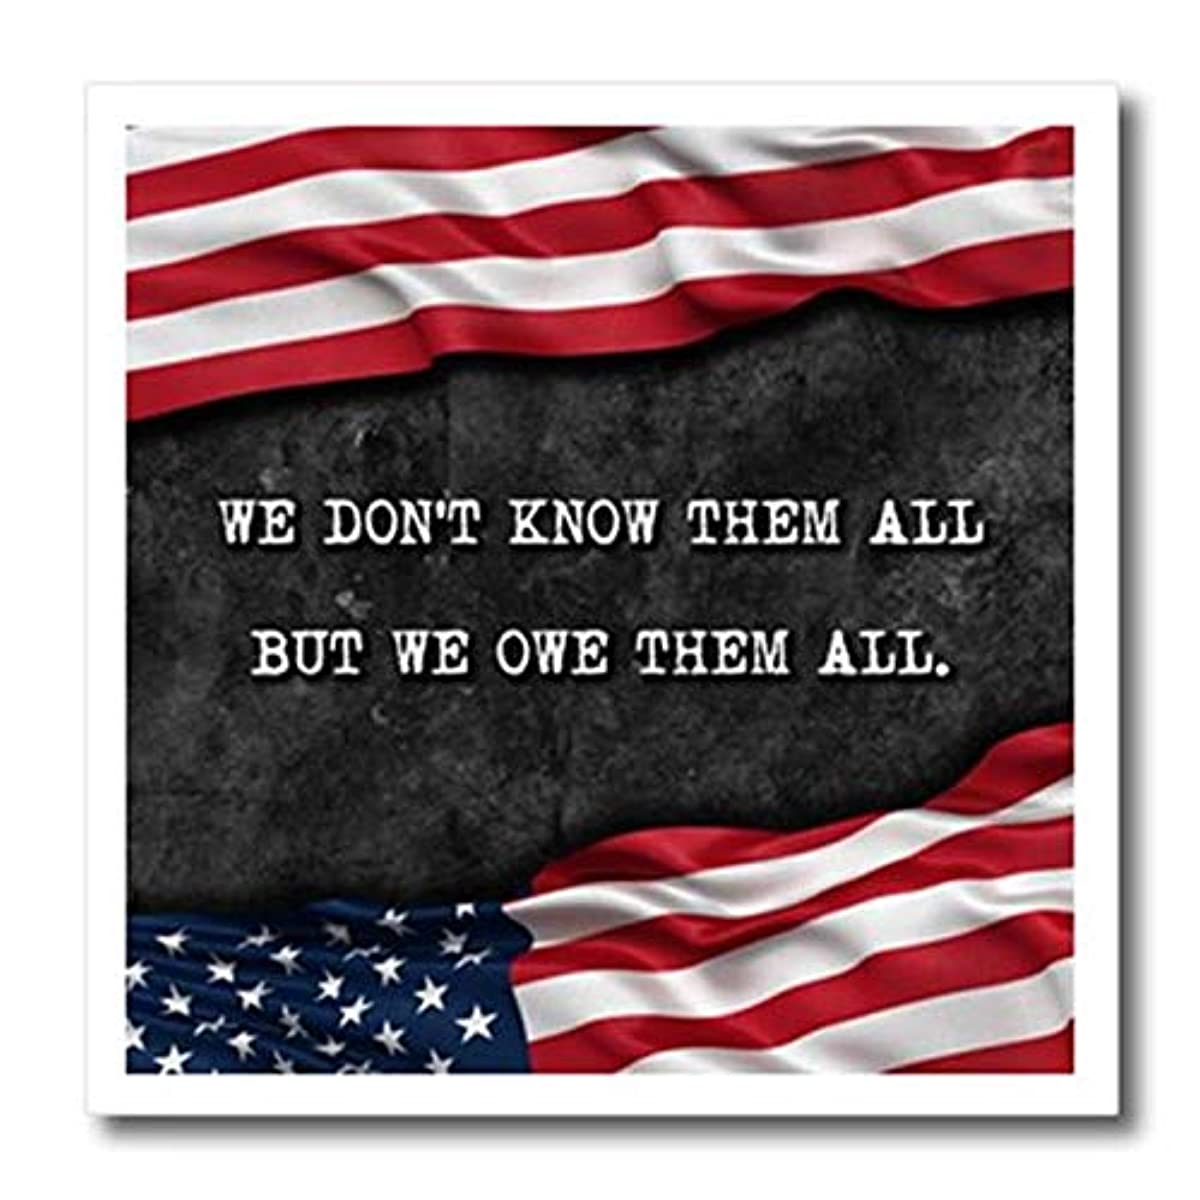 3dRose ht_238510_3 We Do Not We Do Not Know Them All But We Owe Them All Veterans Patriotic Quote Iron On Heat Transfer, 10